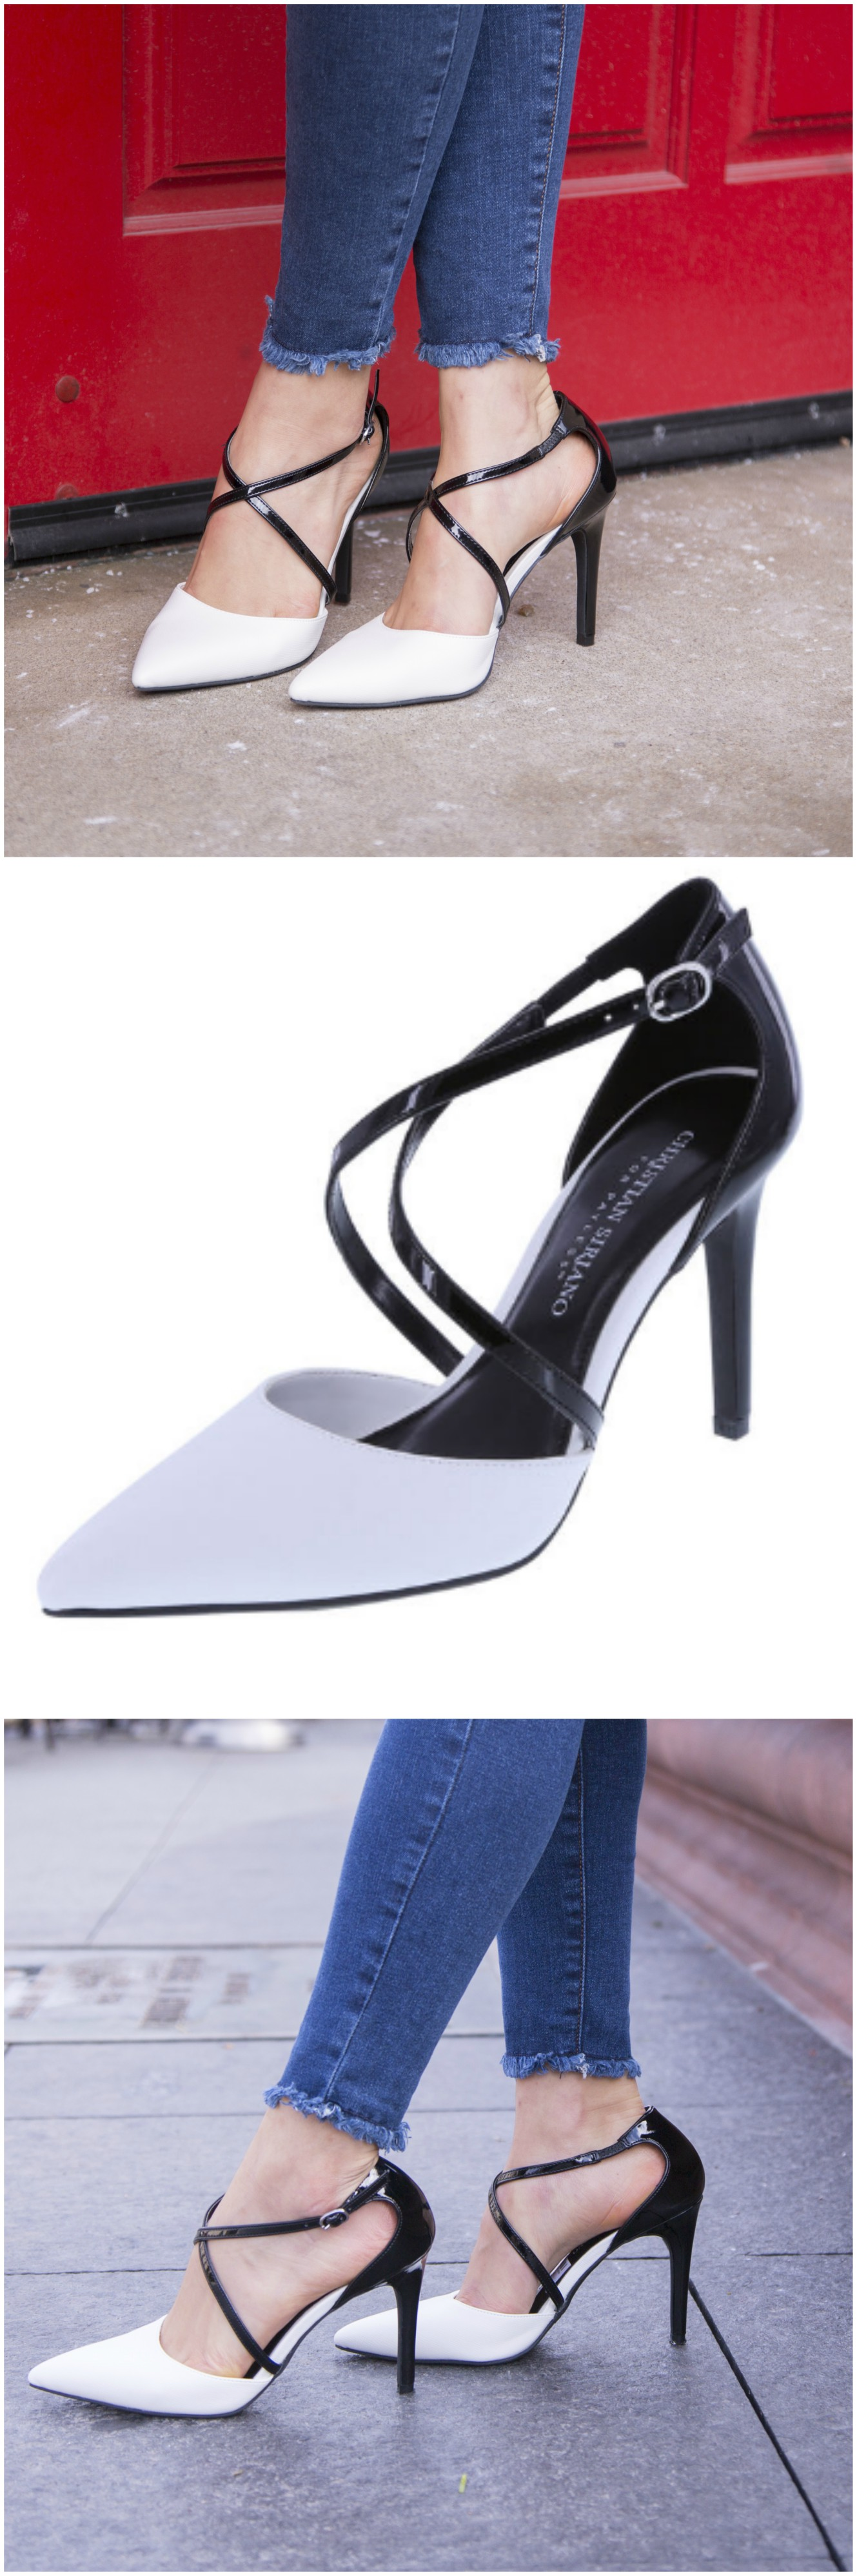 271a0bc709d5f Look like a million bucks in the Klassic pump by Christian Siriano ...